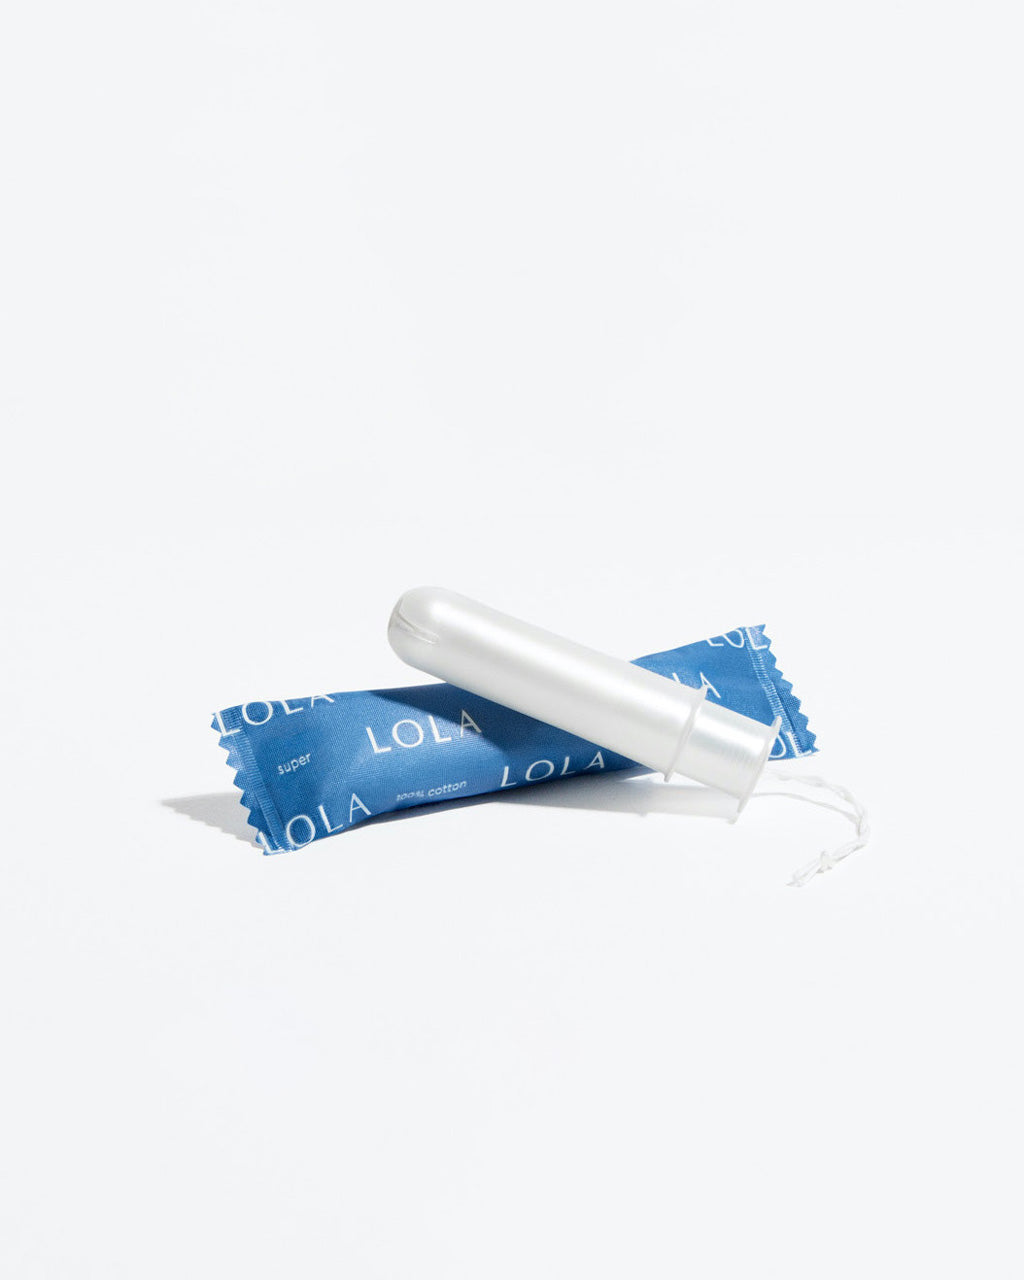 single super absorbency tampon shown with packaging